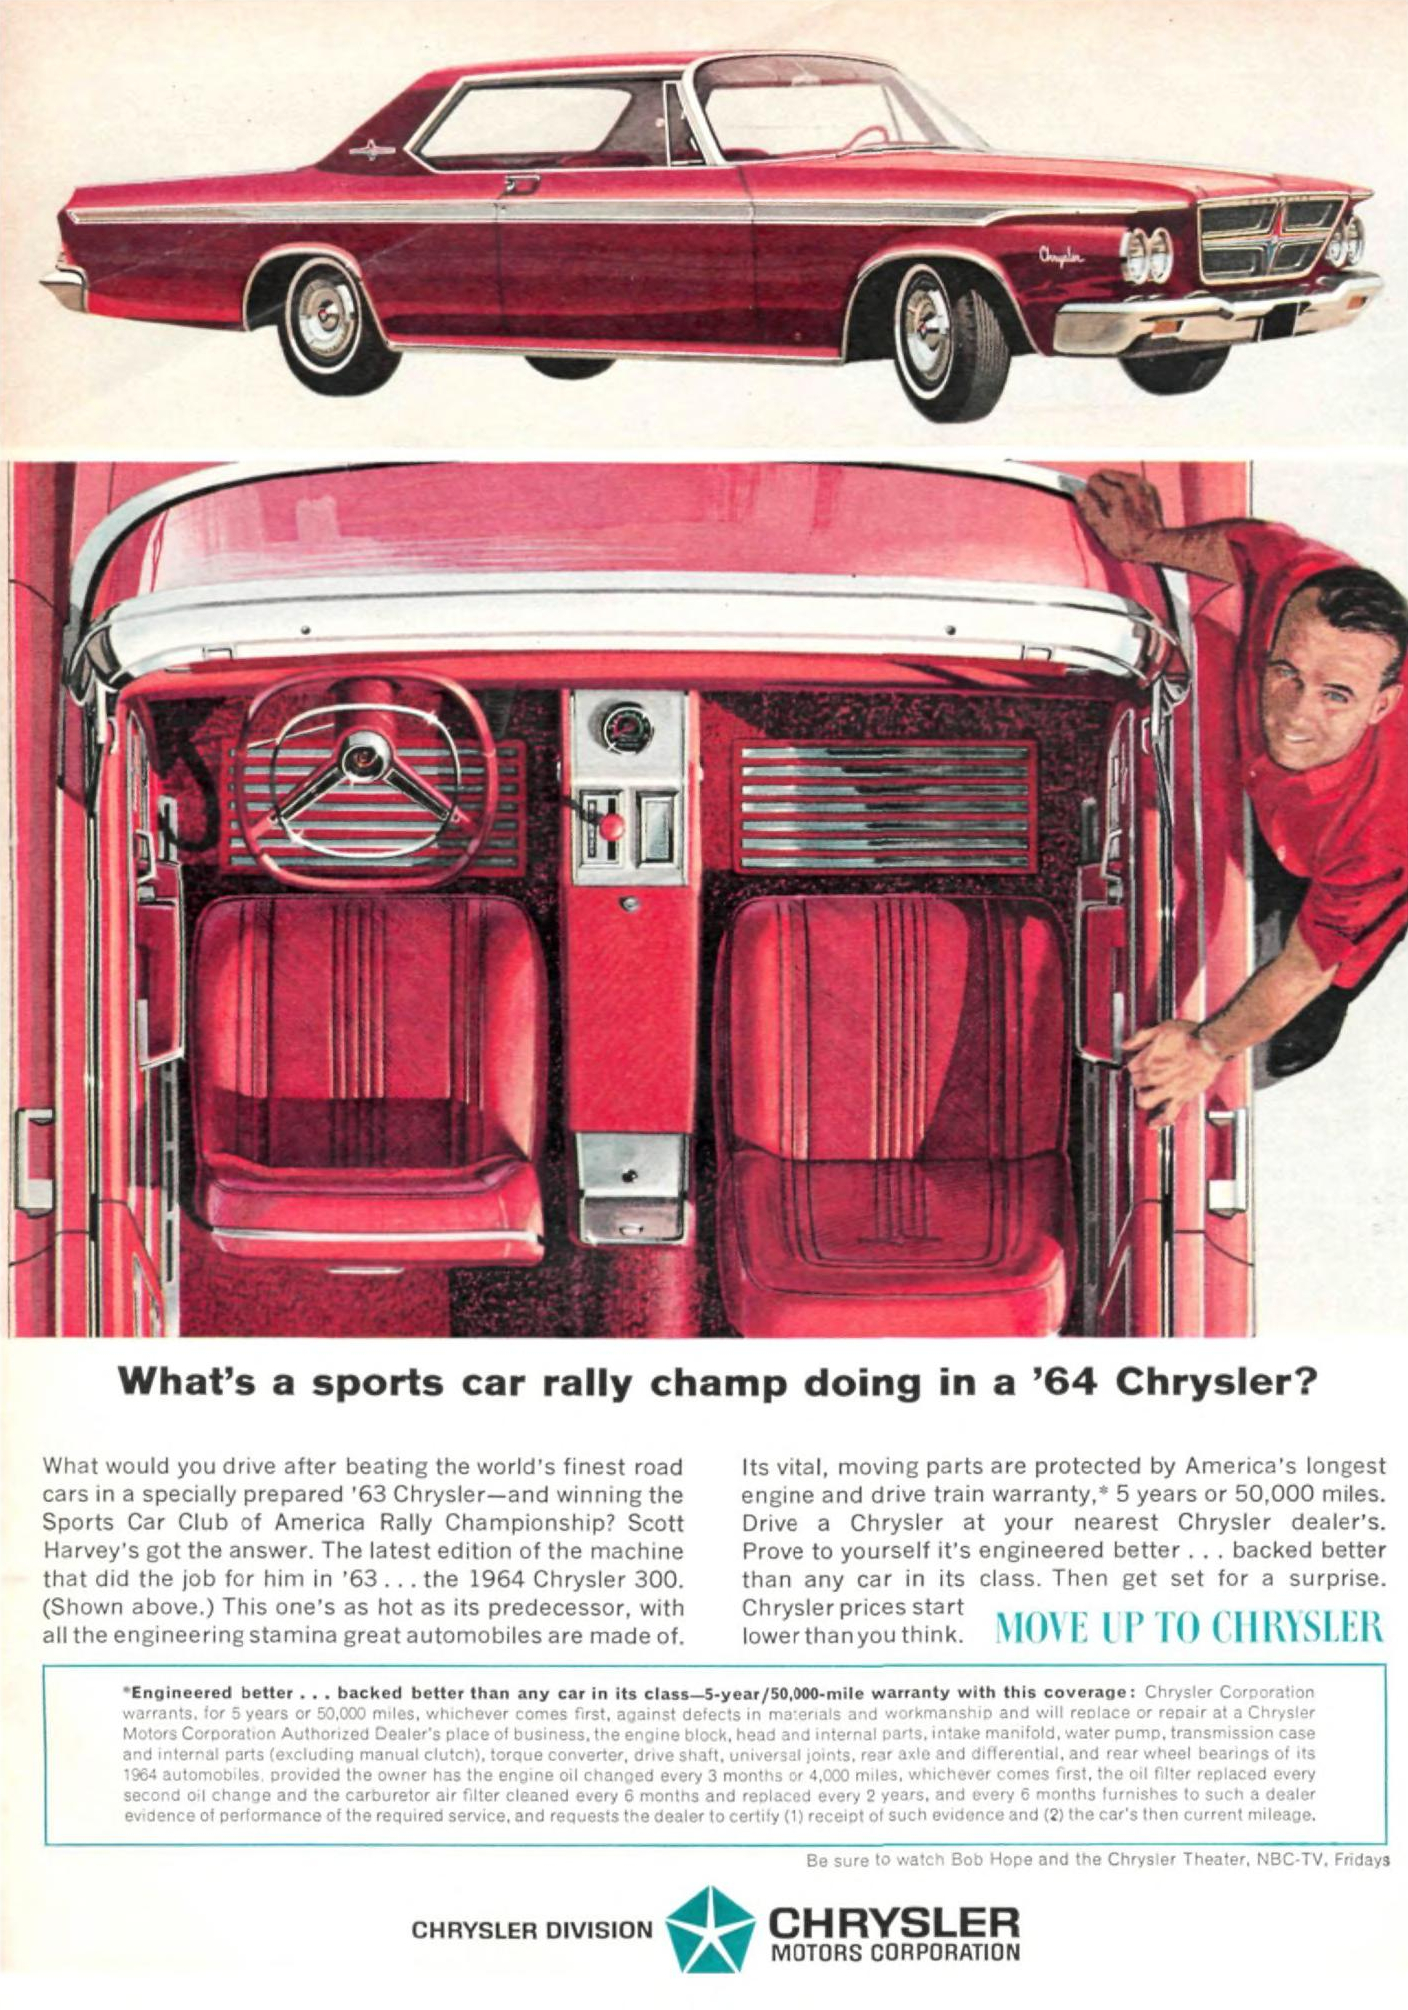 1964 Chrysler 300 - published in Sports Illustrated - March 16, 1964